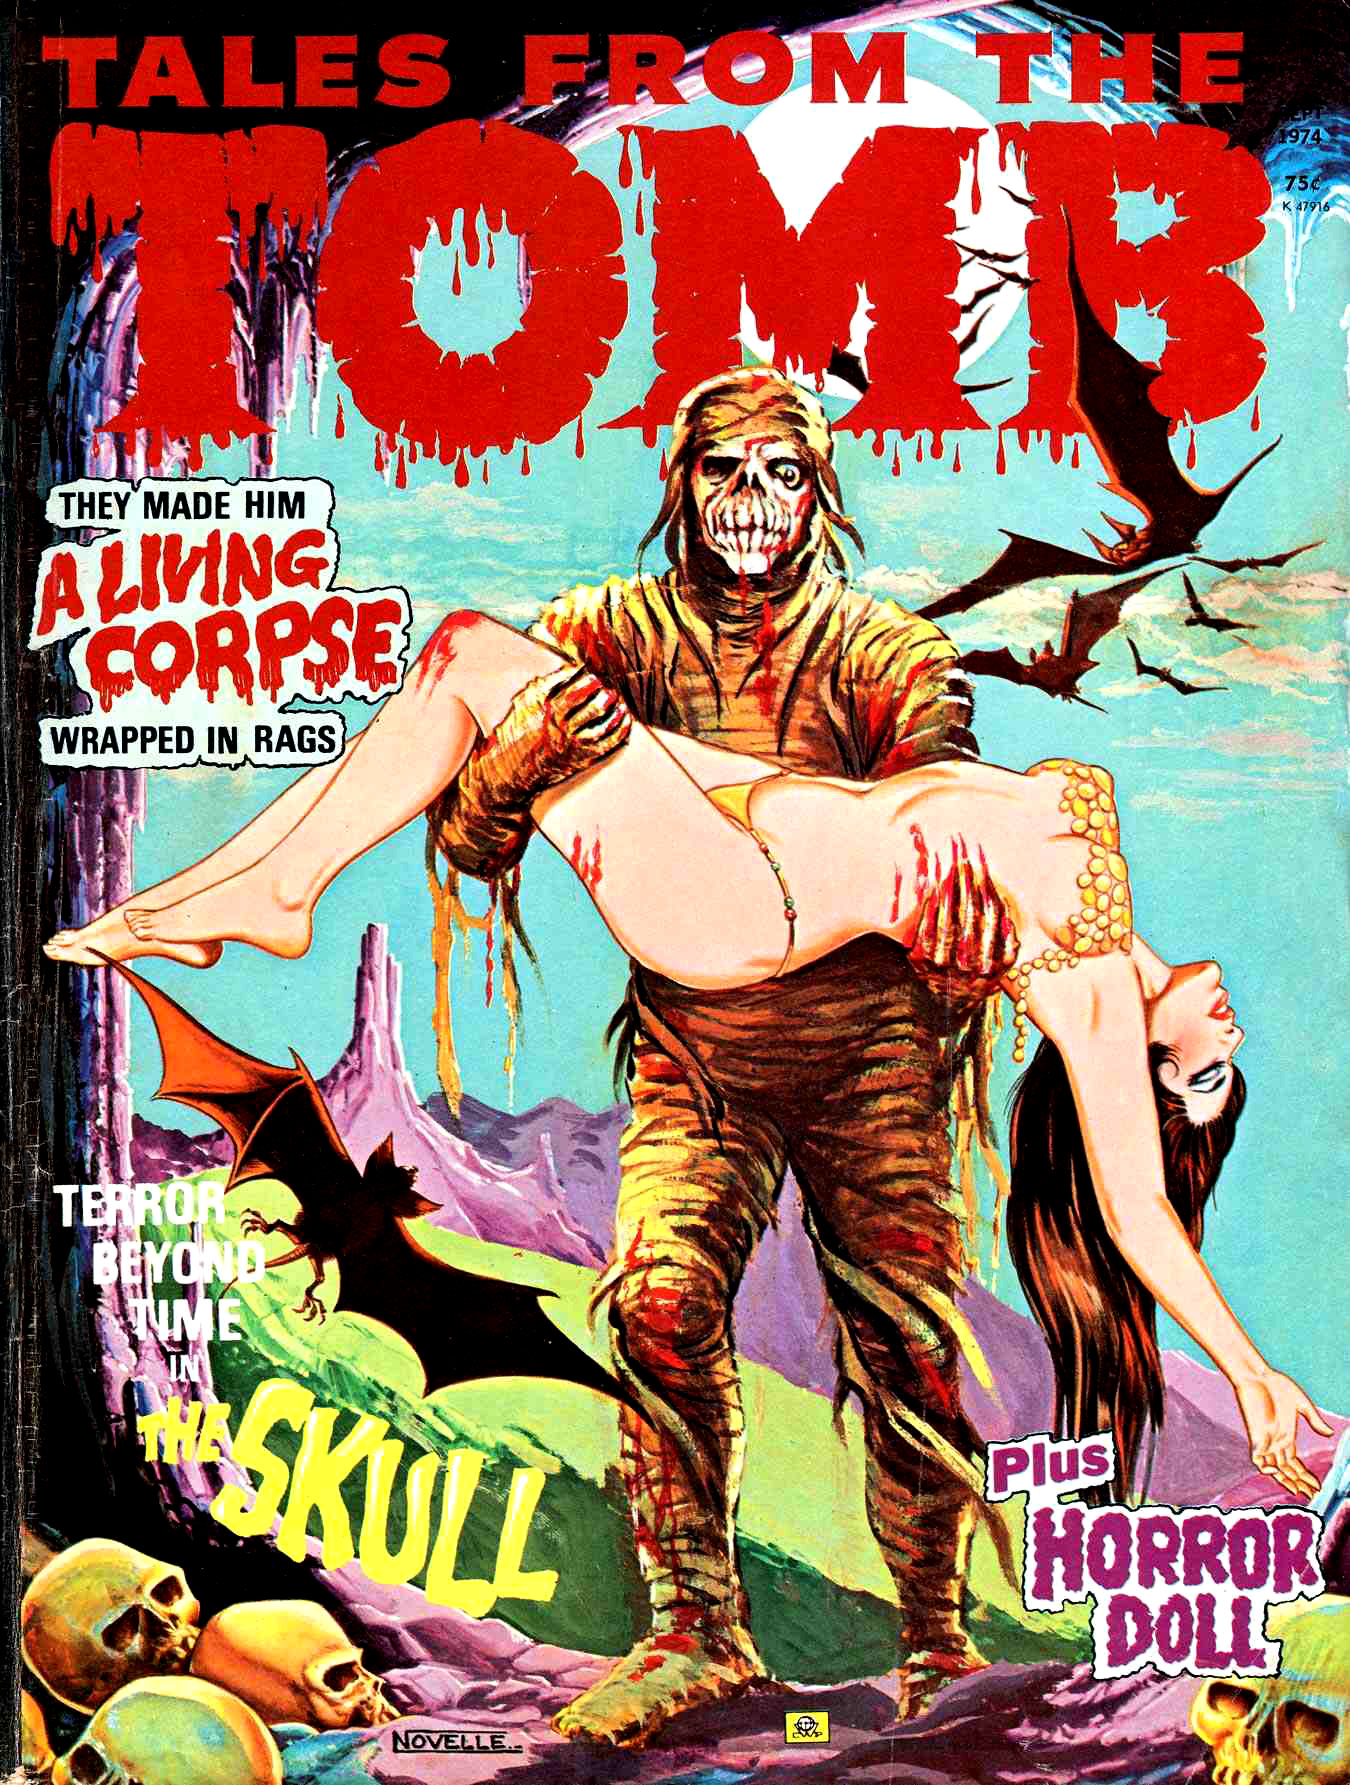 Tales from the Tomb - Vol. 6 #5 (Eerie Publications, 1974)